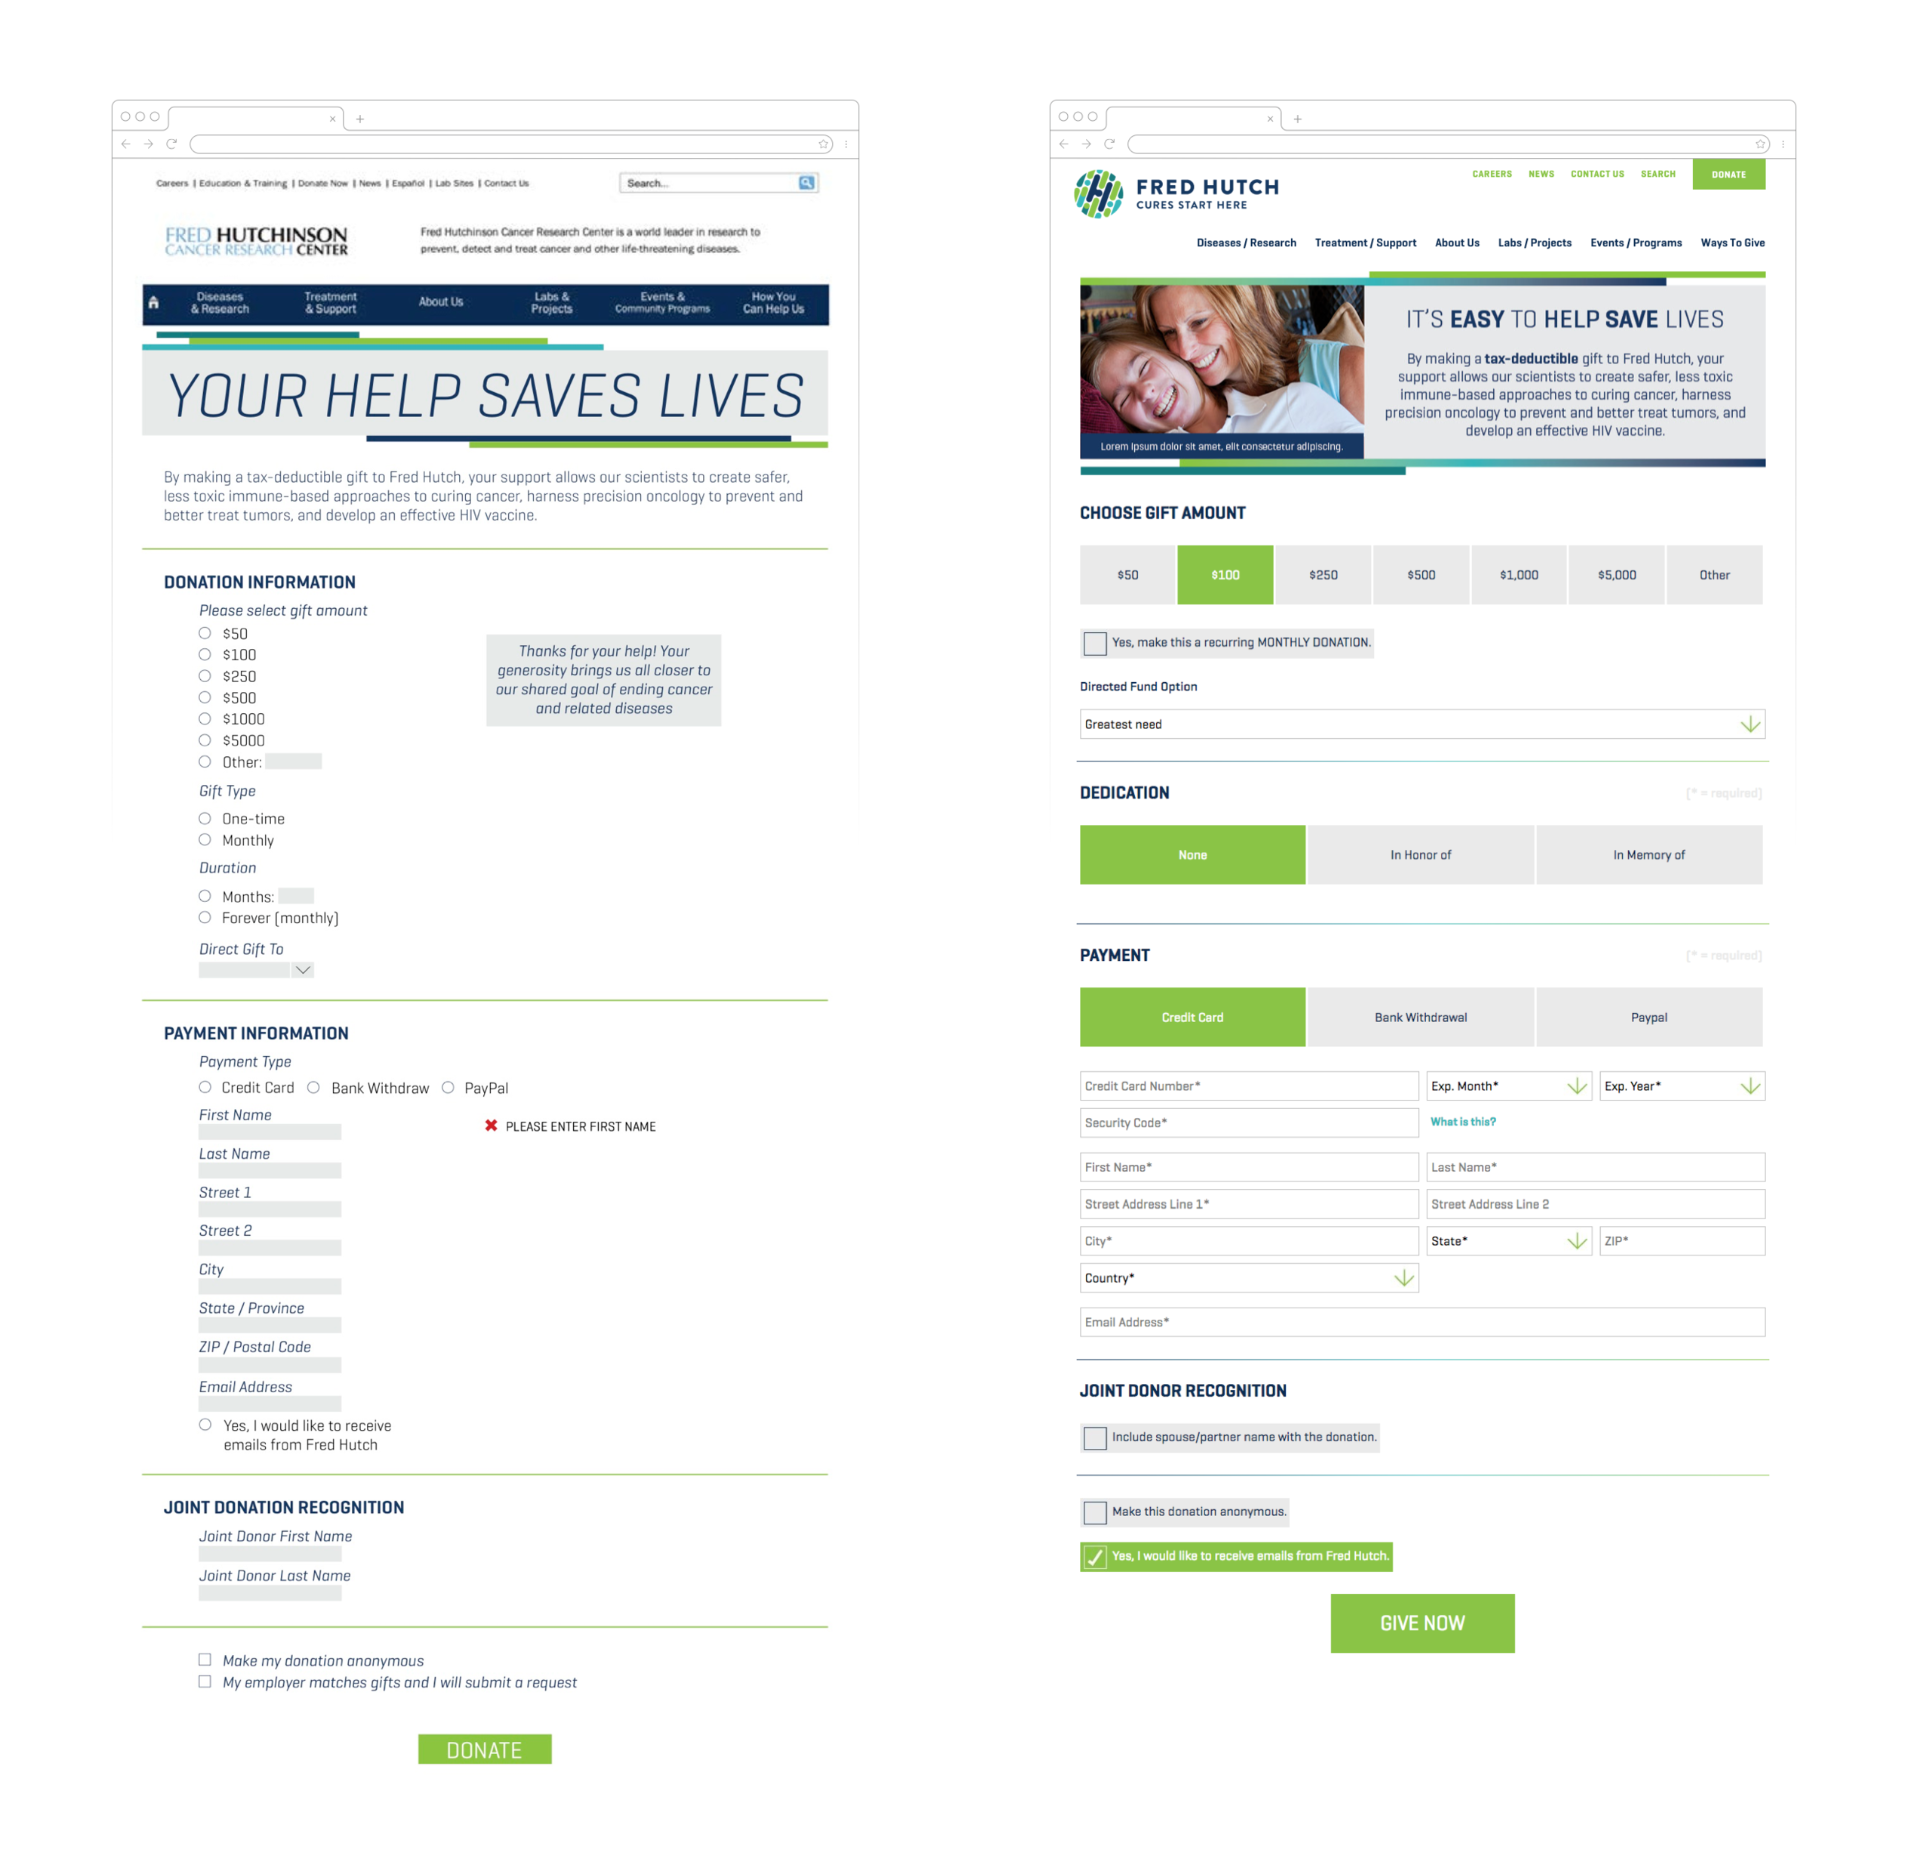 fredhutch_donations-04.png